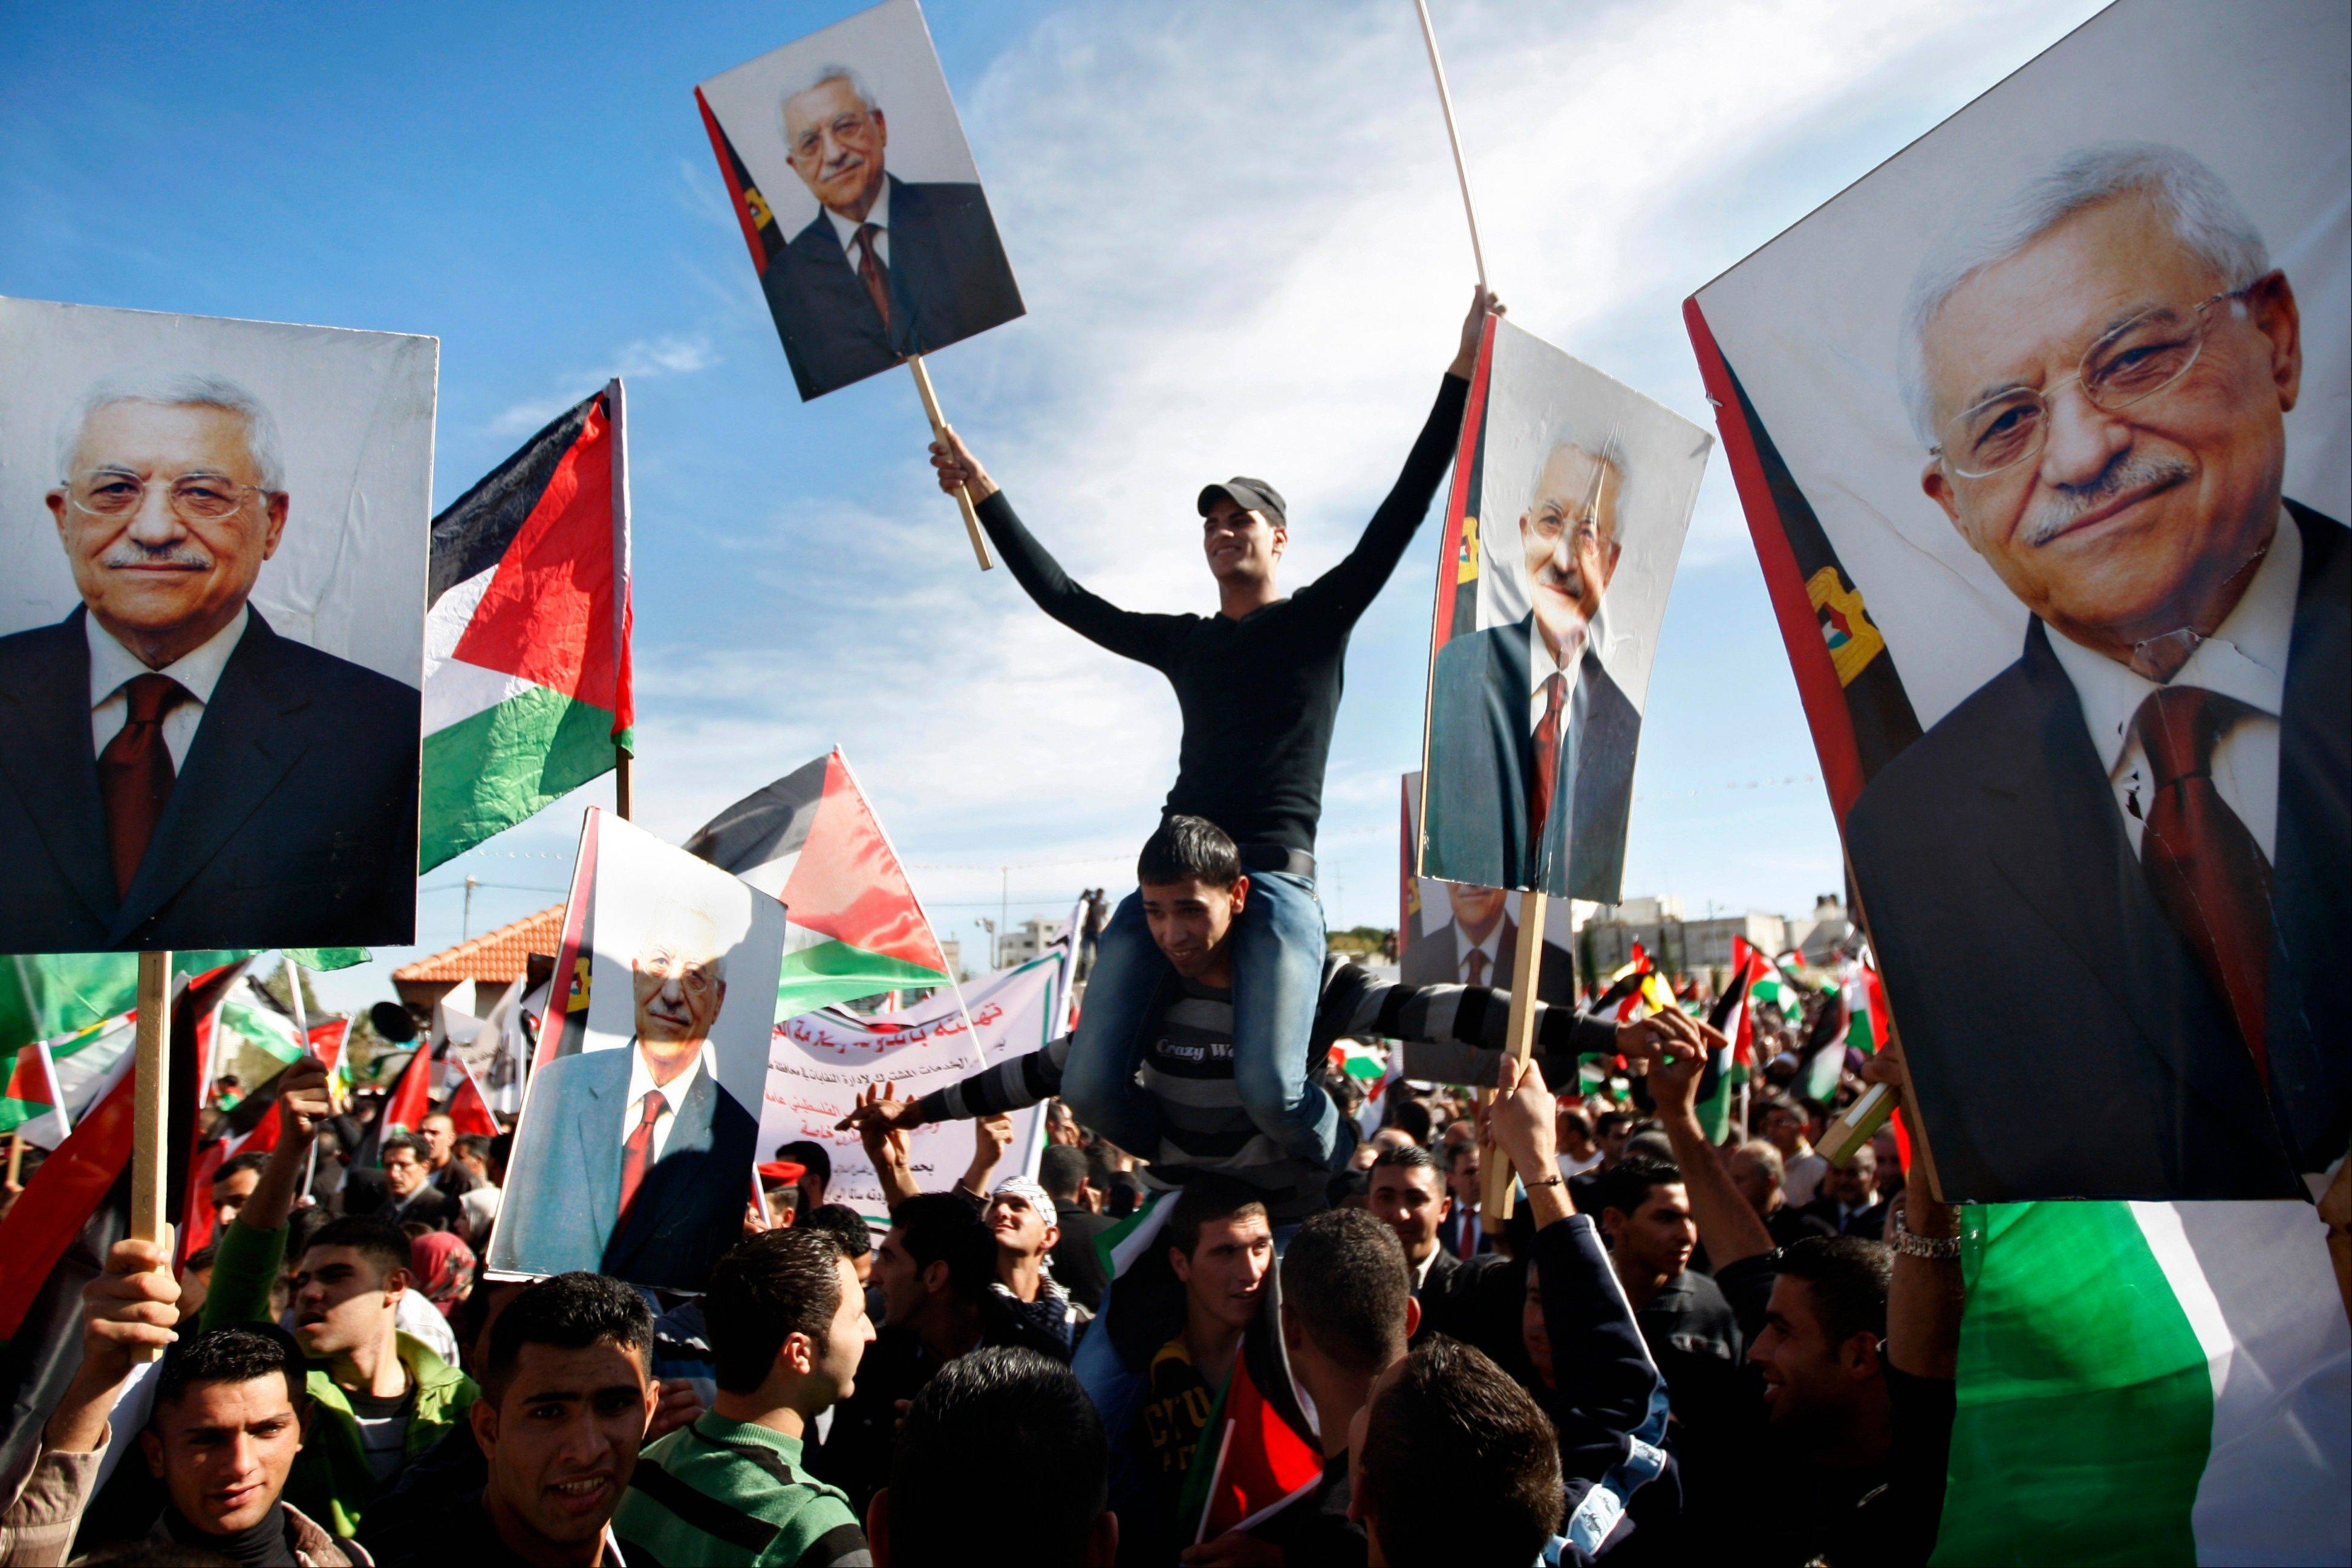 Palestinians hold pictures of Palestinian President Mahmoud Abbas, as they celebrate their successful bid to win U.N. statehood recognition in the West Bank city of Ramallah on Sunday.